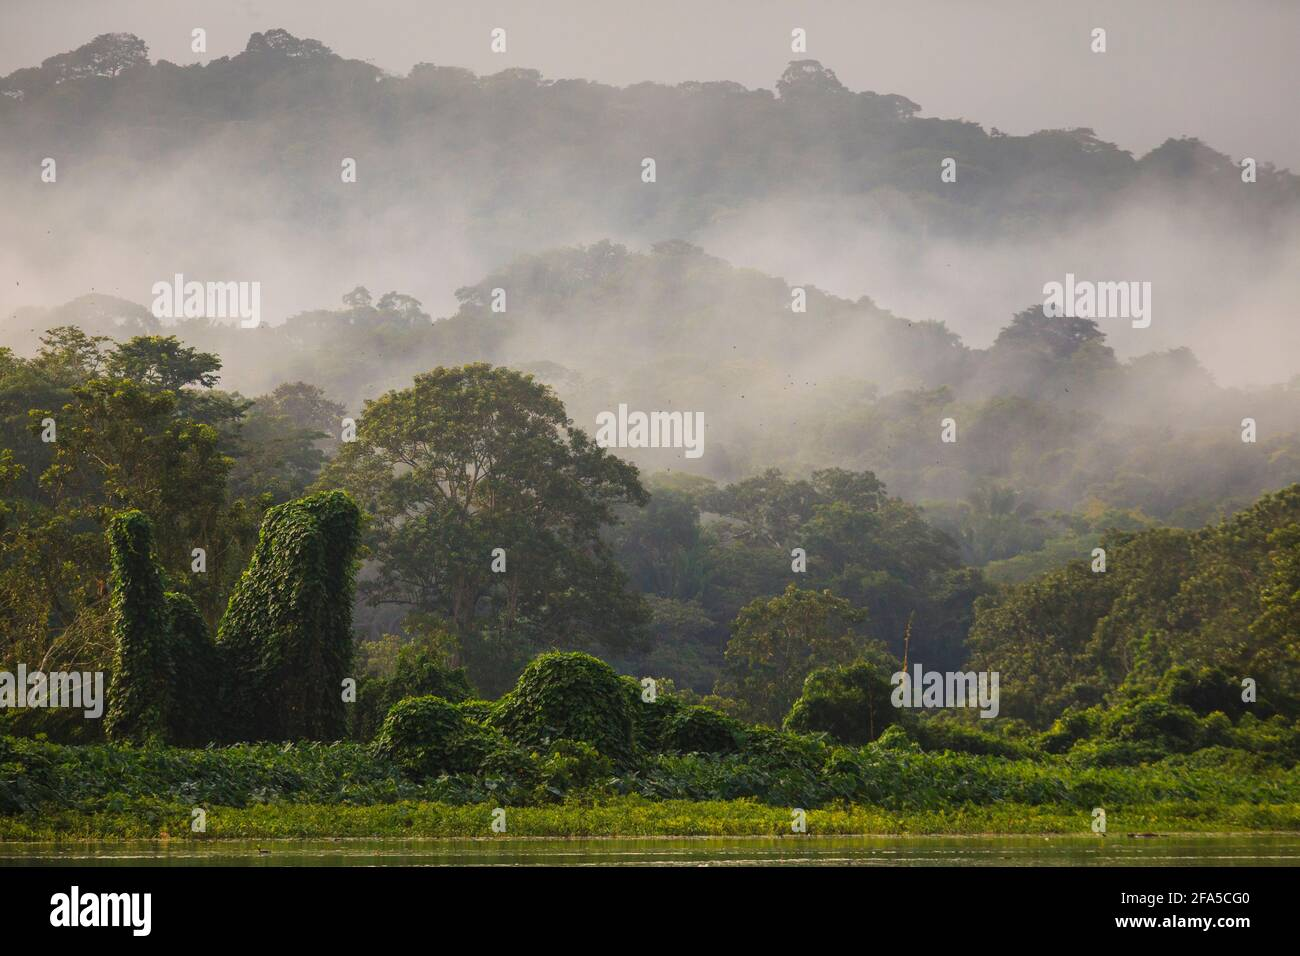 Misty rainforest in early morning light on the eastern side of Rio Chagres, Soberania national park, Republic of Panama, Central America. Stock Photo